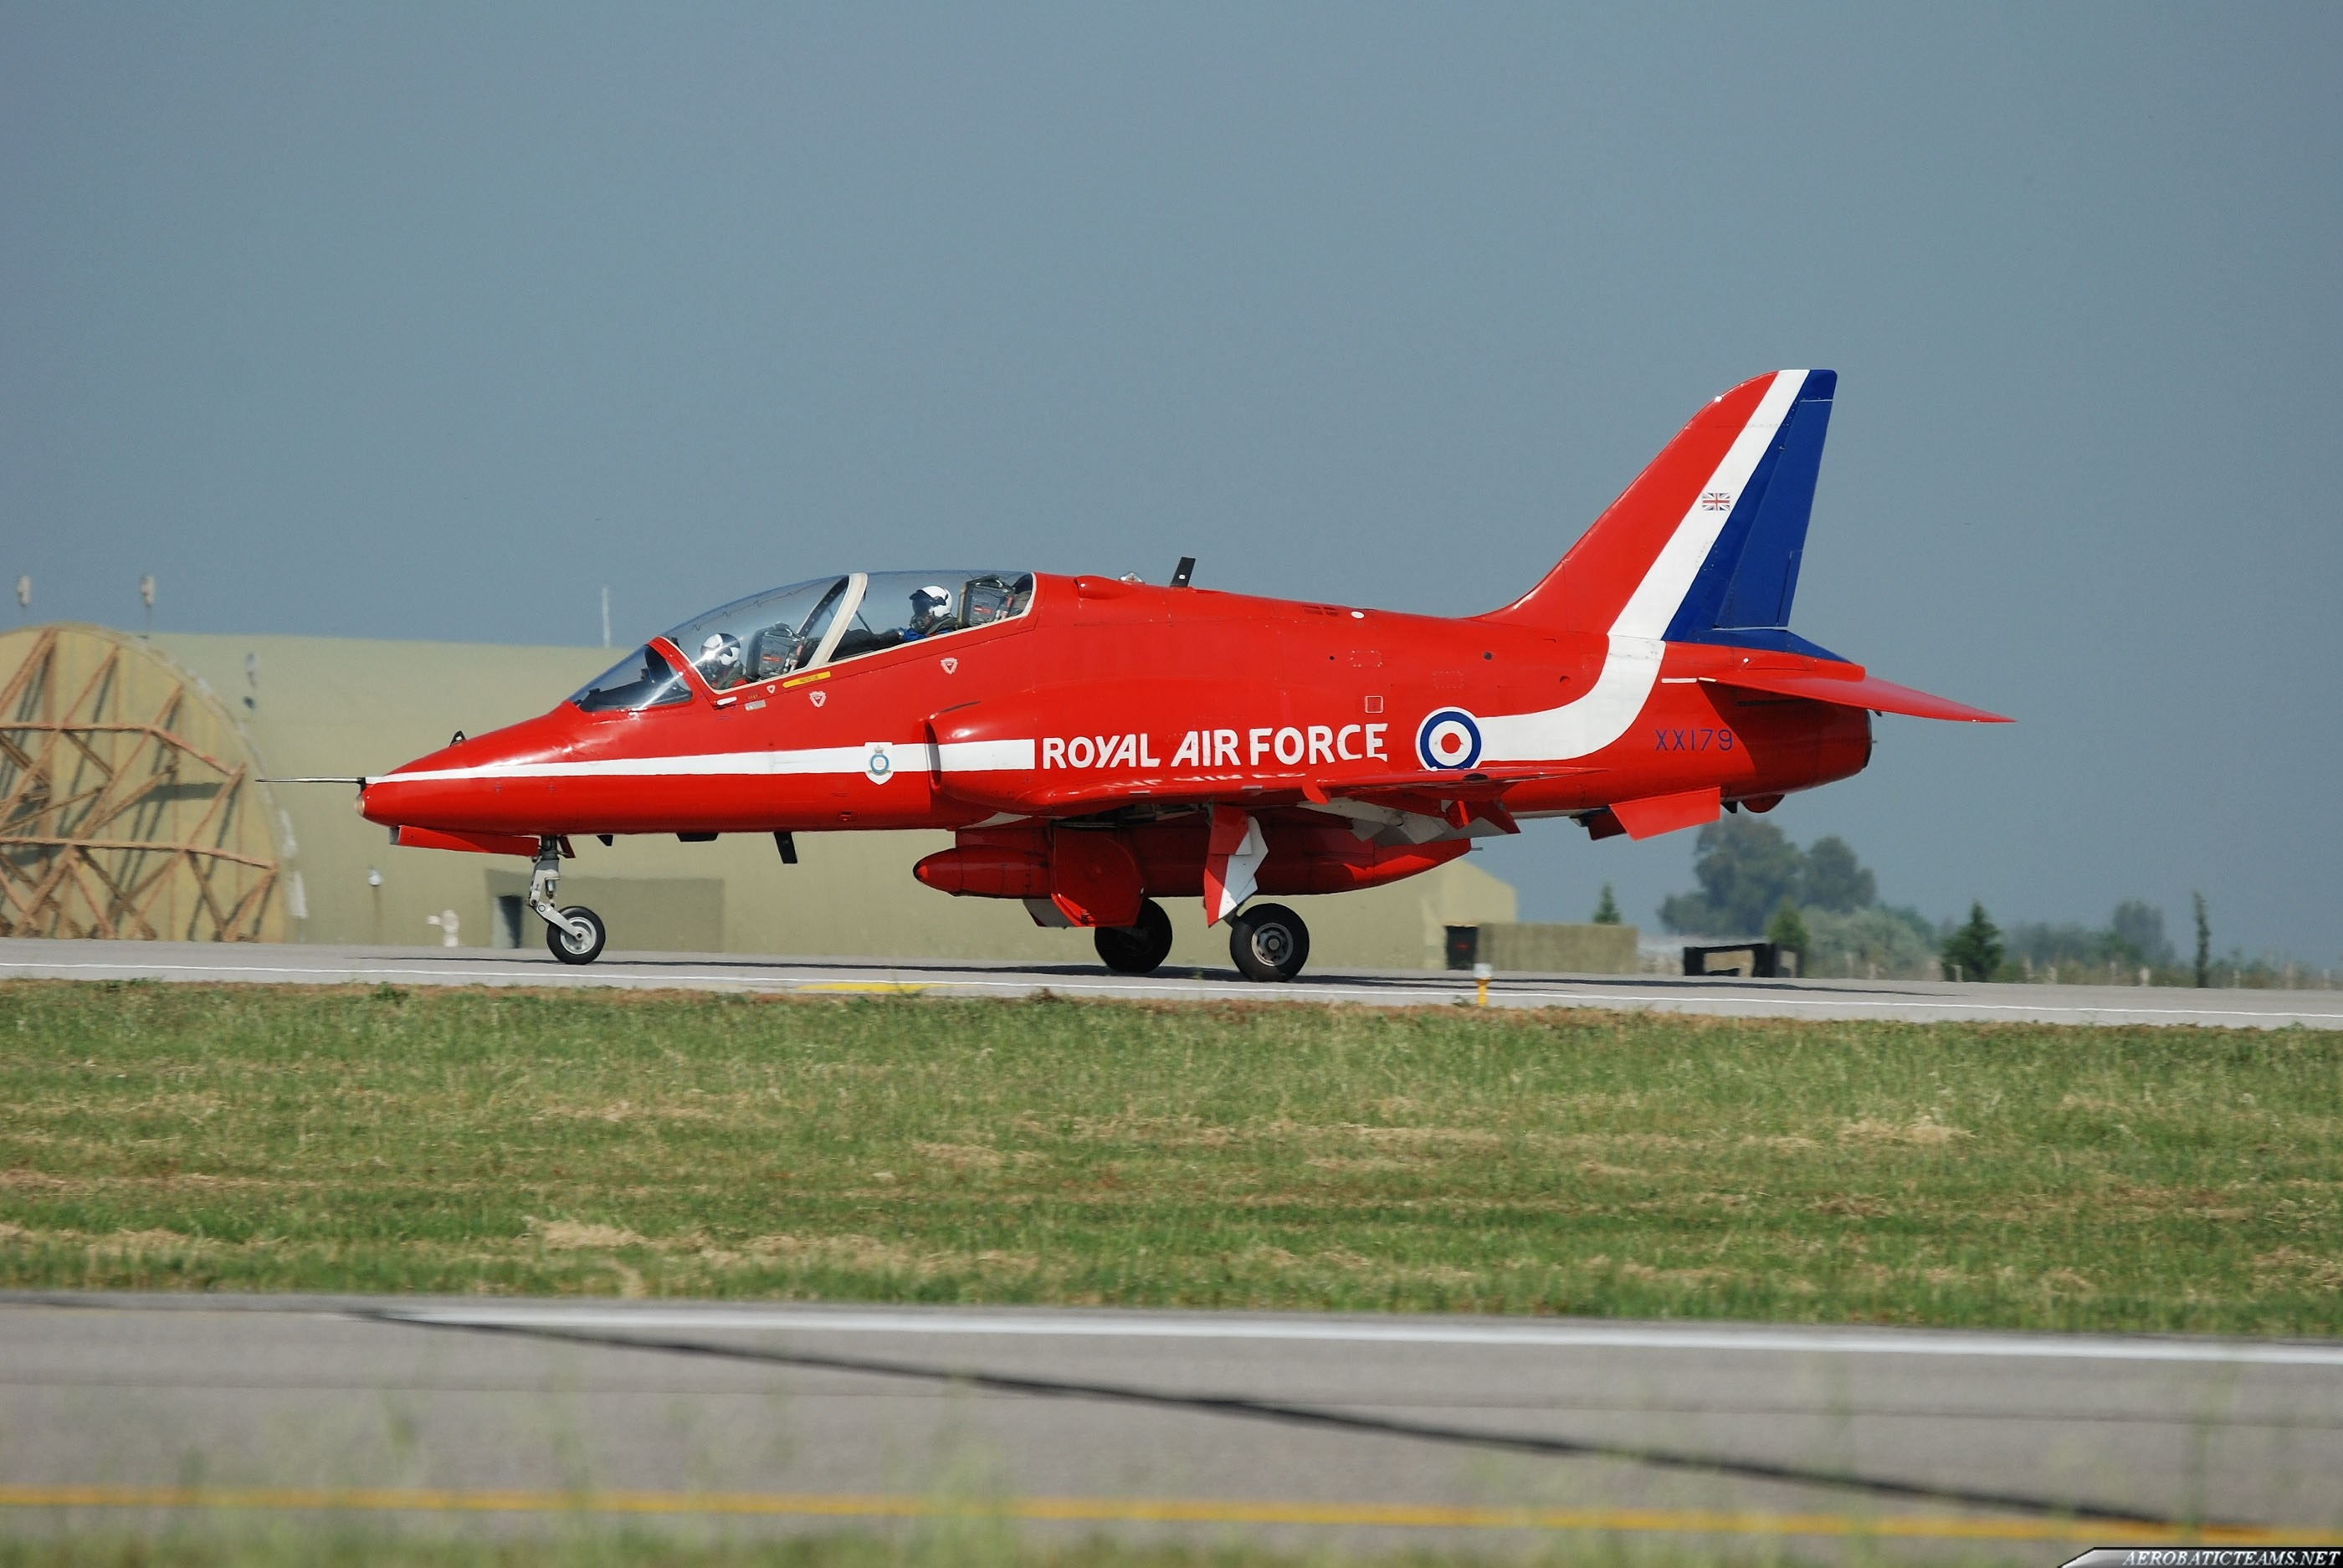 Red Arrows BAe Hawk T Mk.1A XX179. The plane of Flt. Lt. Jon Egging at Izmir Air Show June 4th, 2011. On August 20th, this plane crashed killing the pilot.